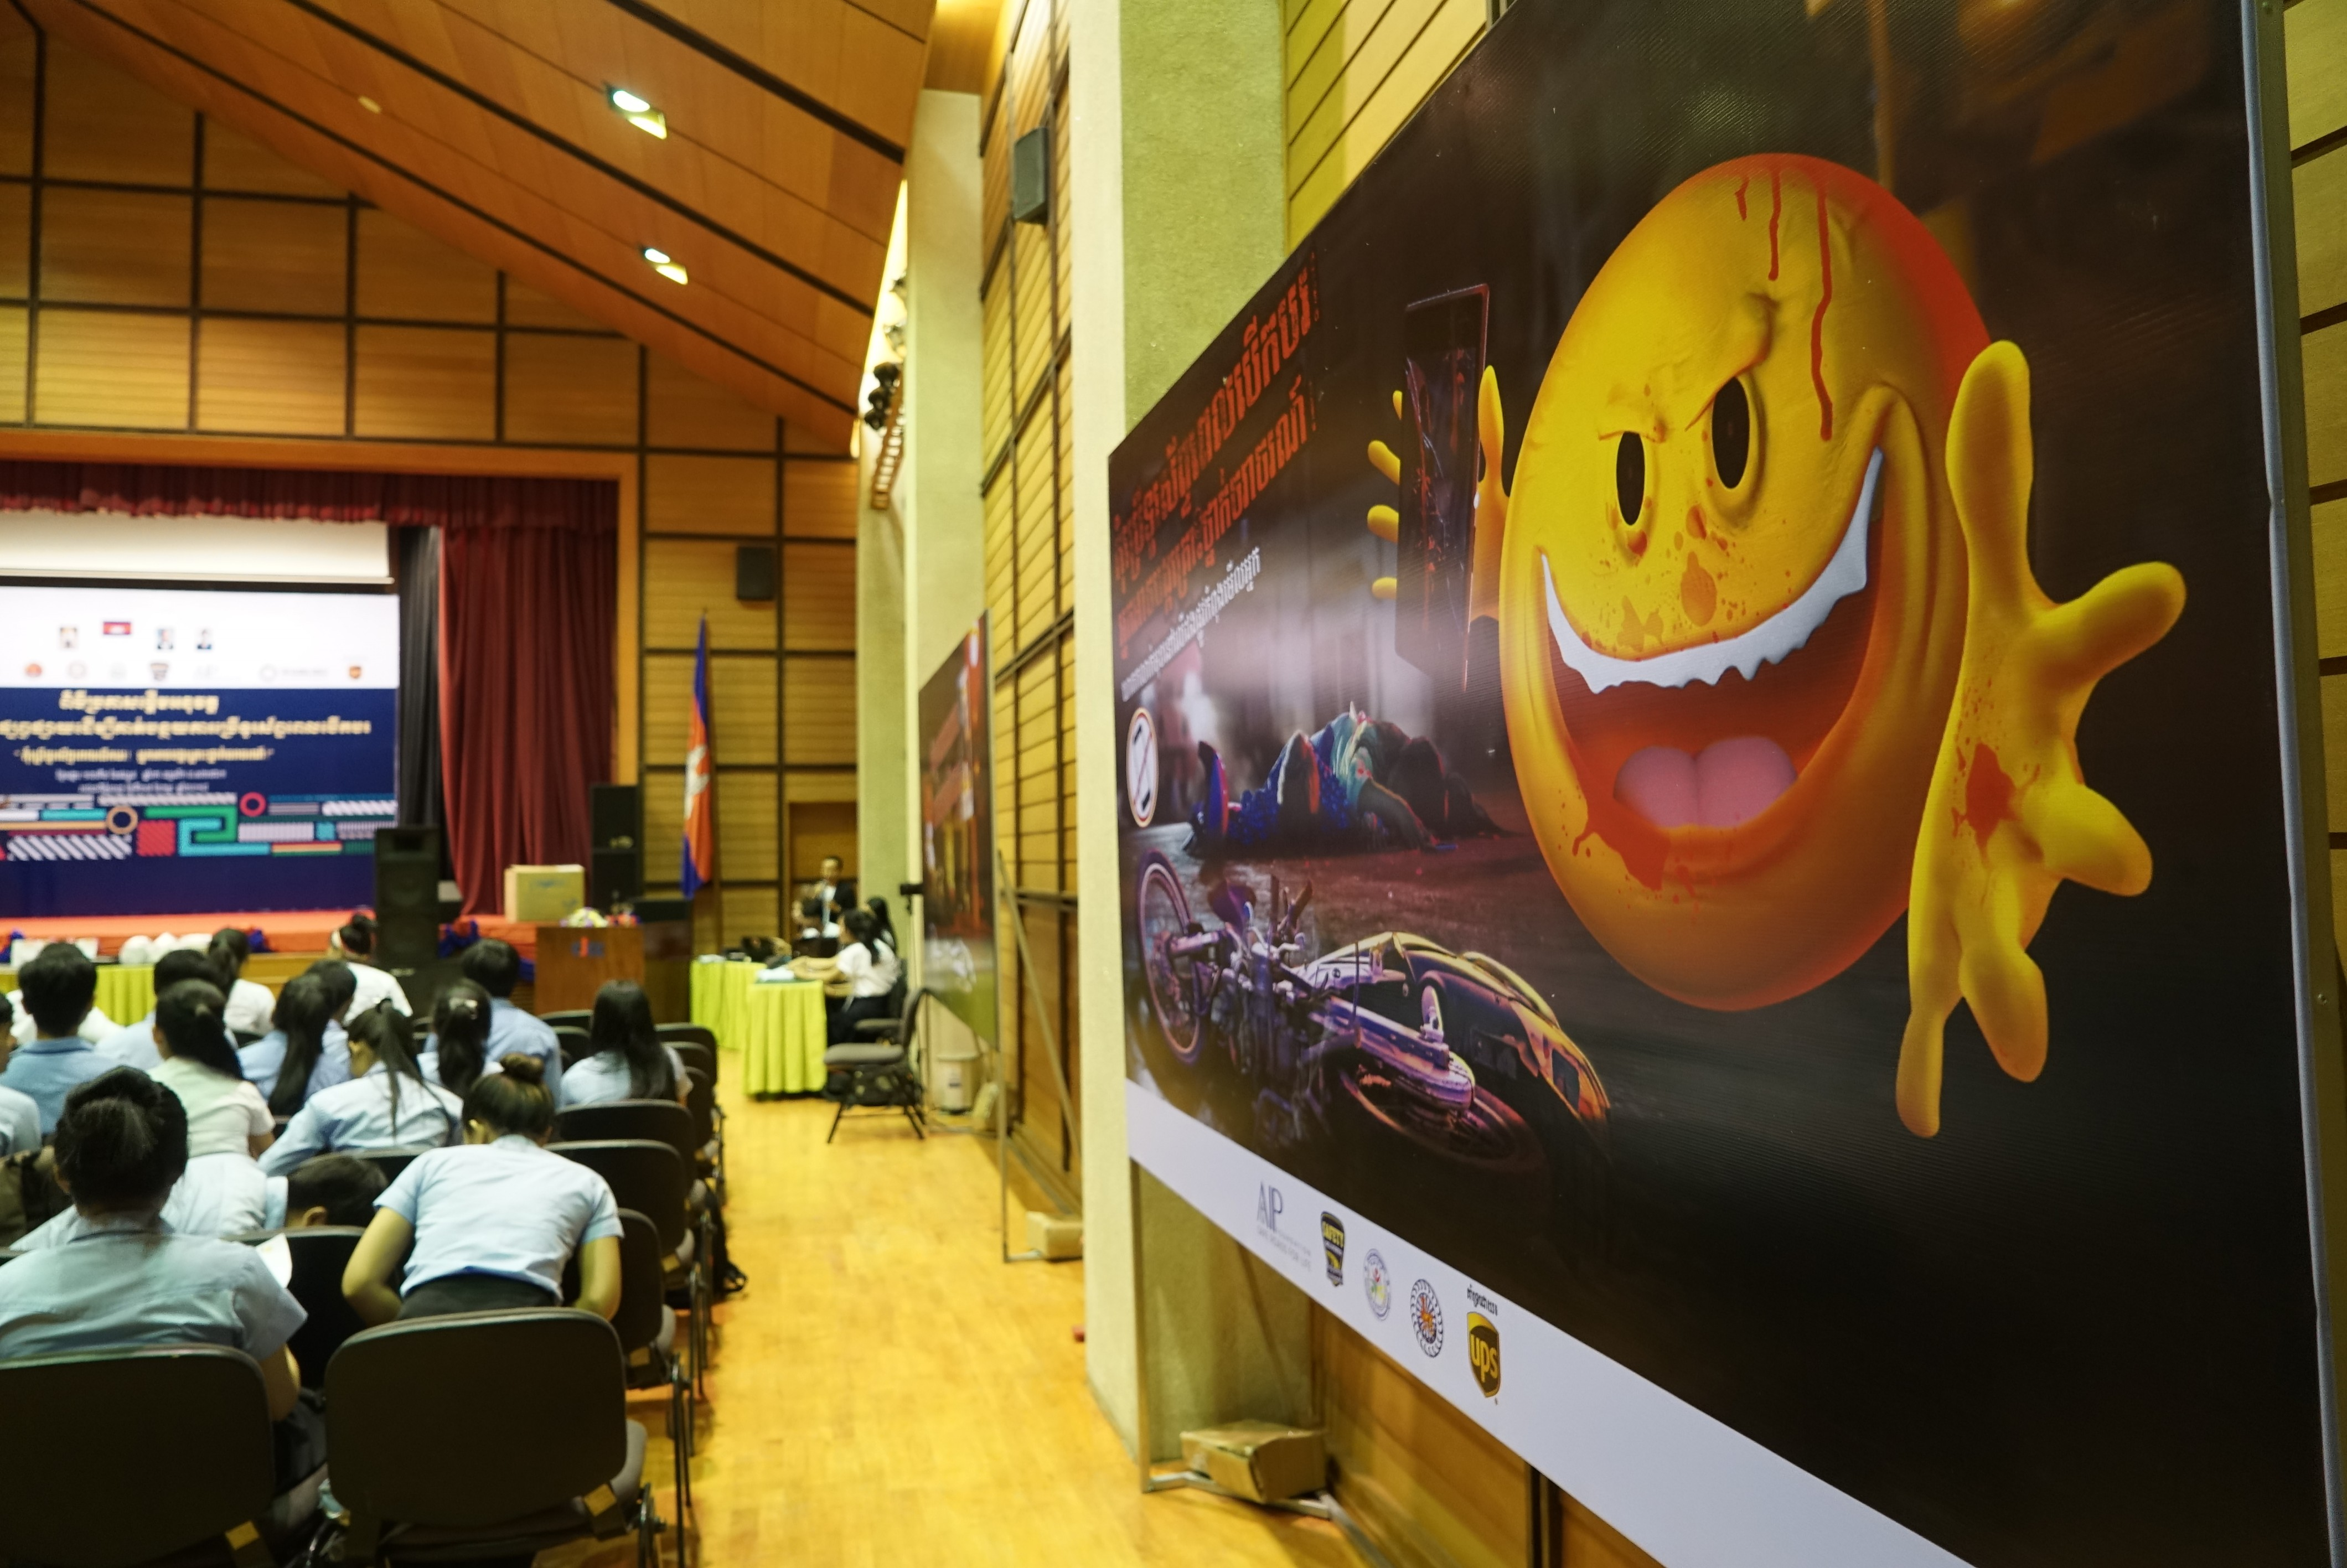 Emojis take on sinister role in new campaign addressing distracted driving among youth